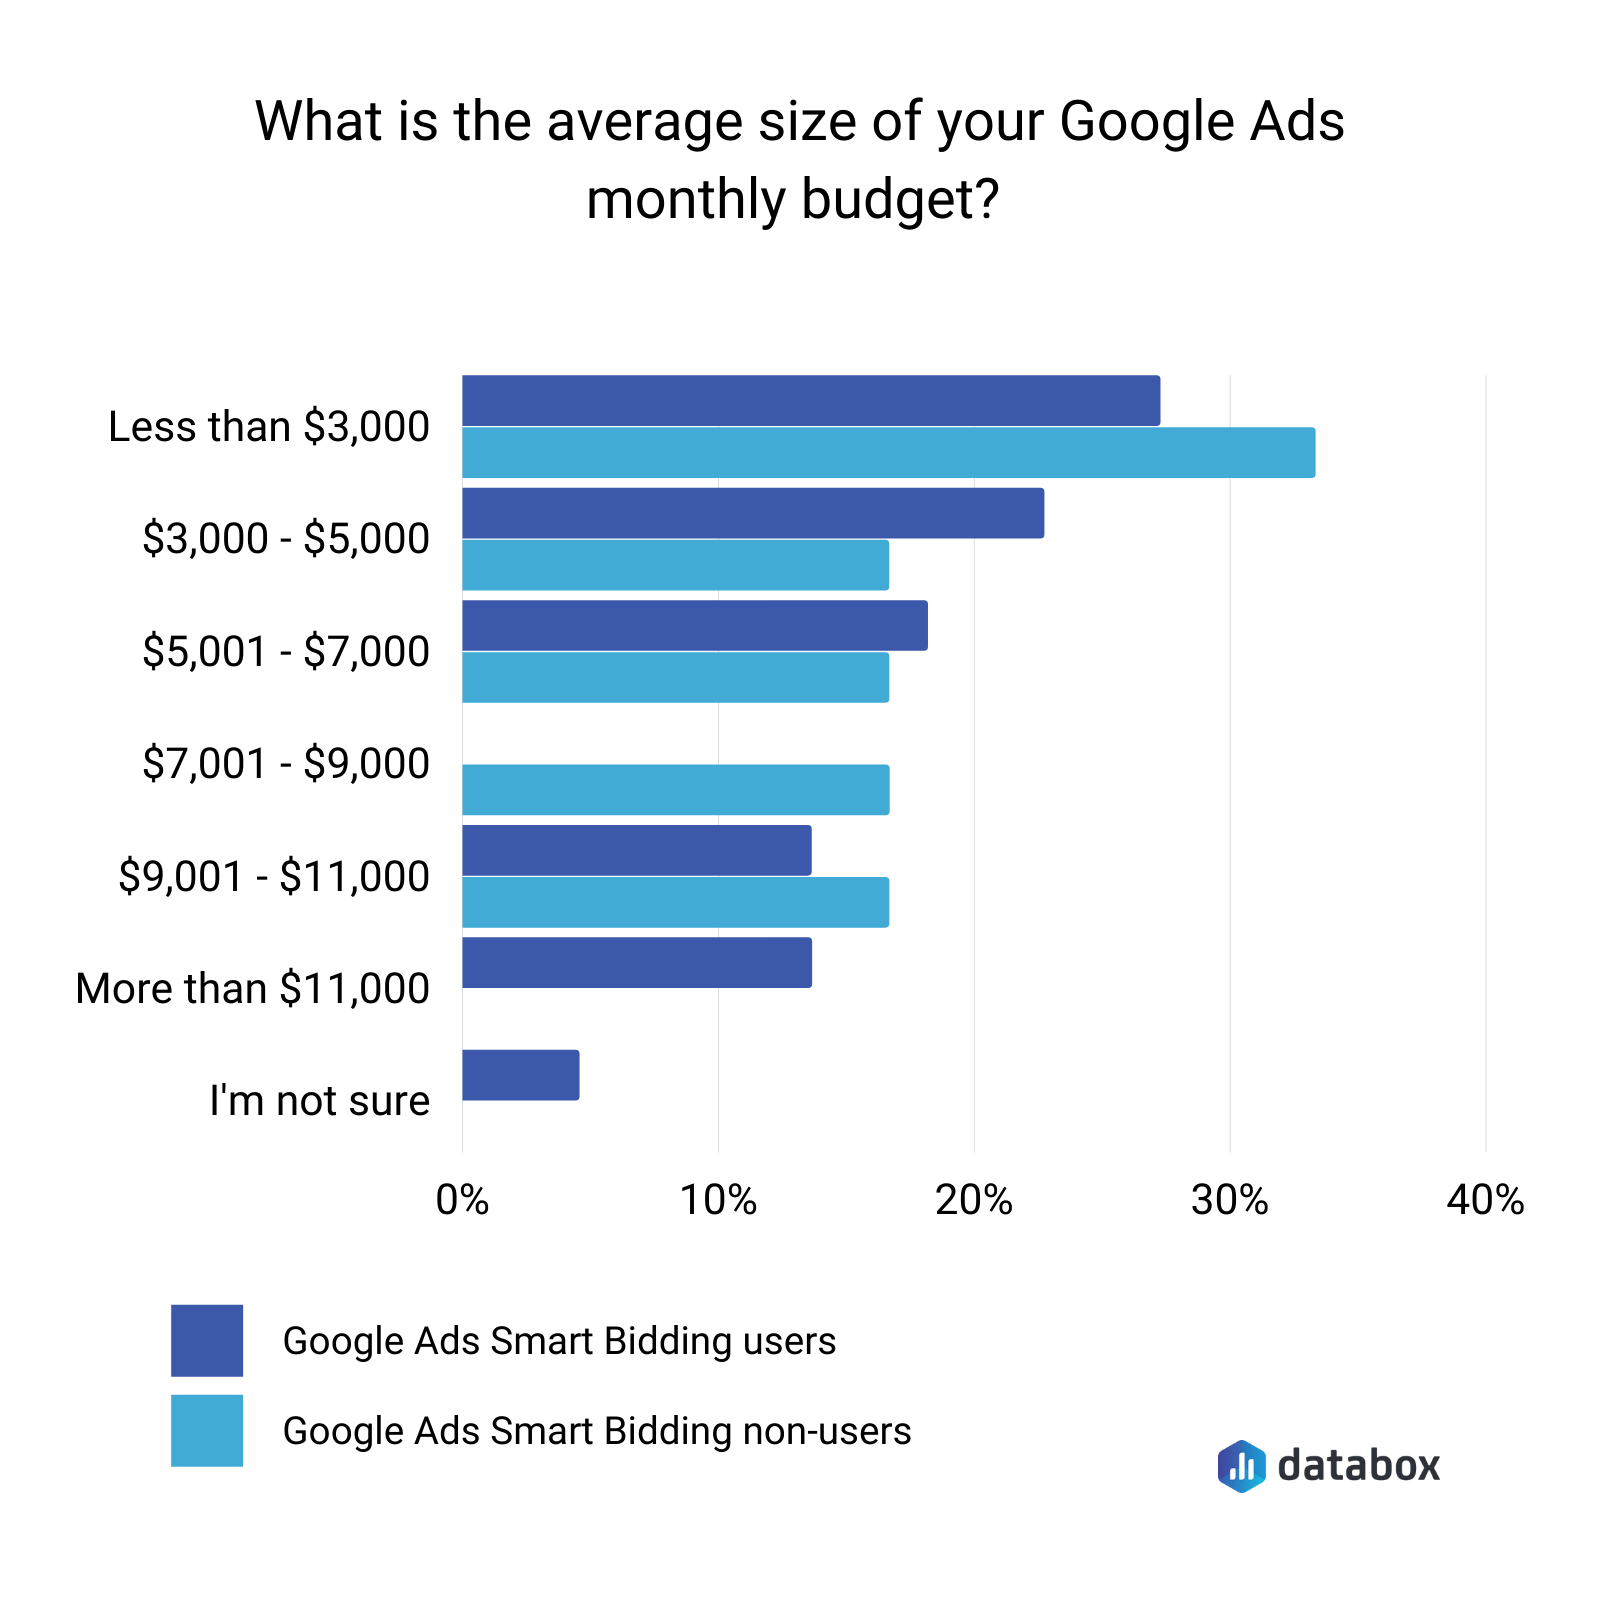 what is the average size of your Google ads monthly budget